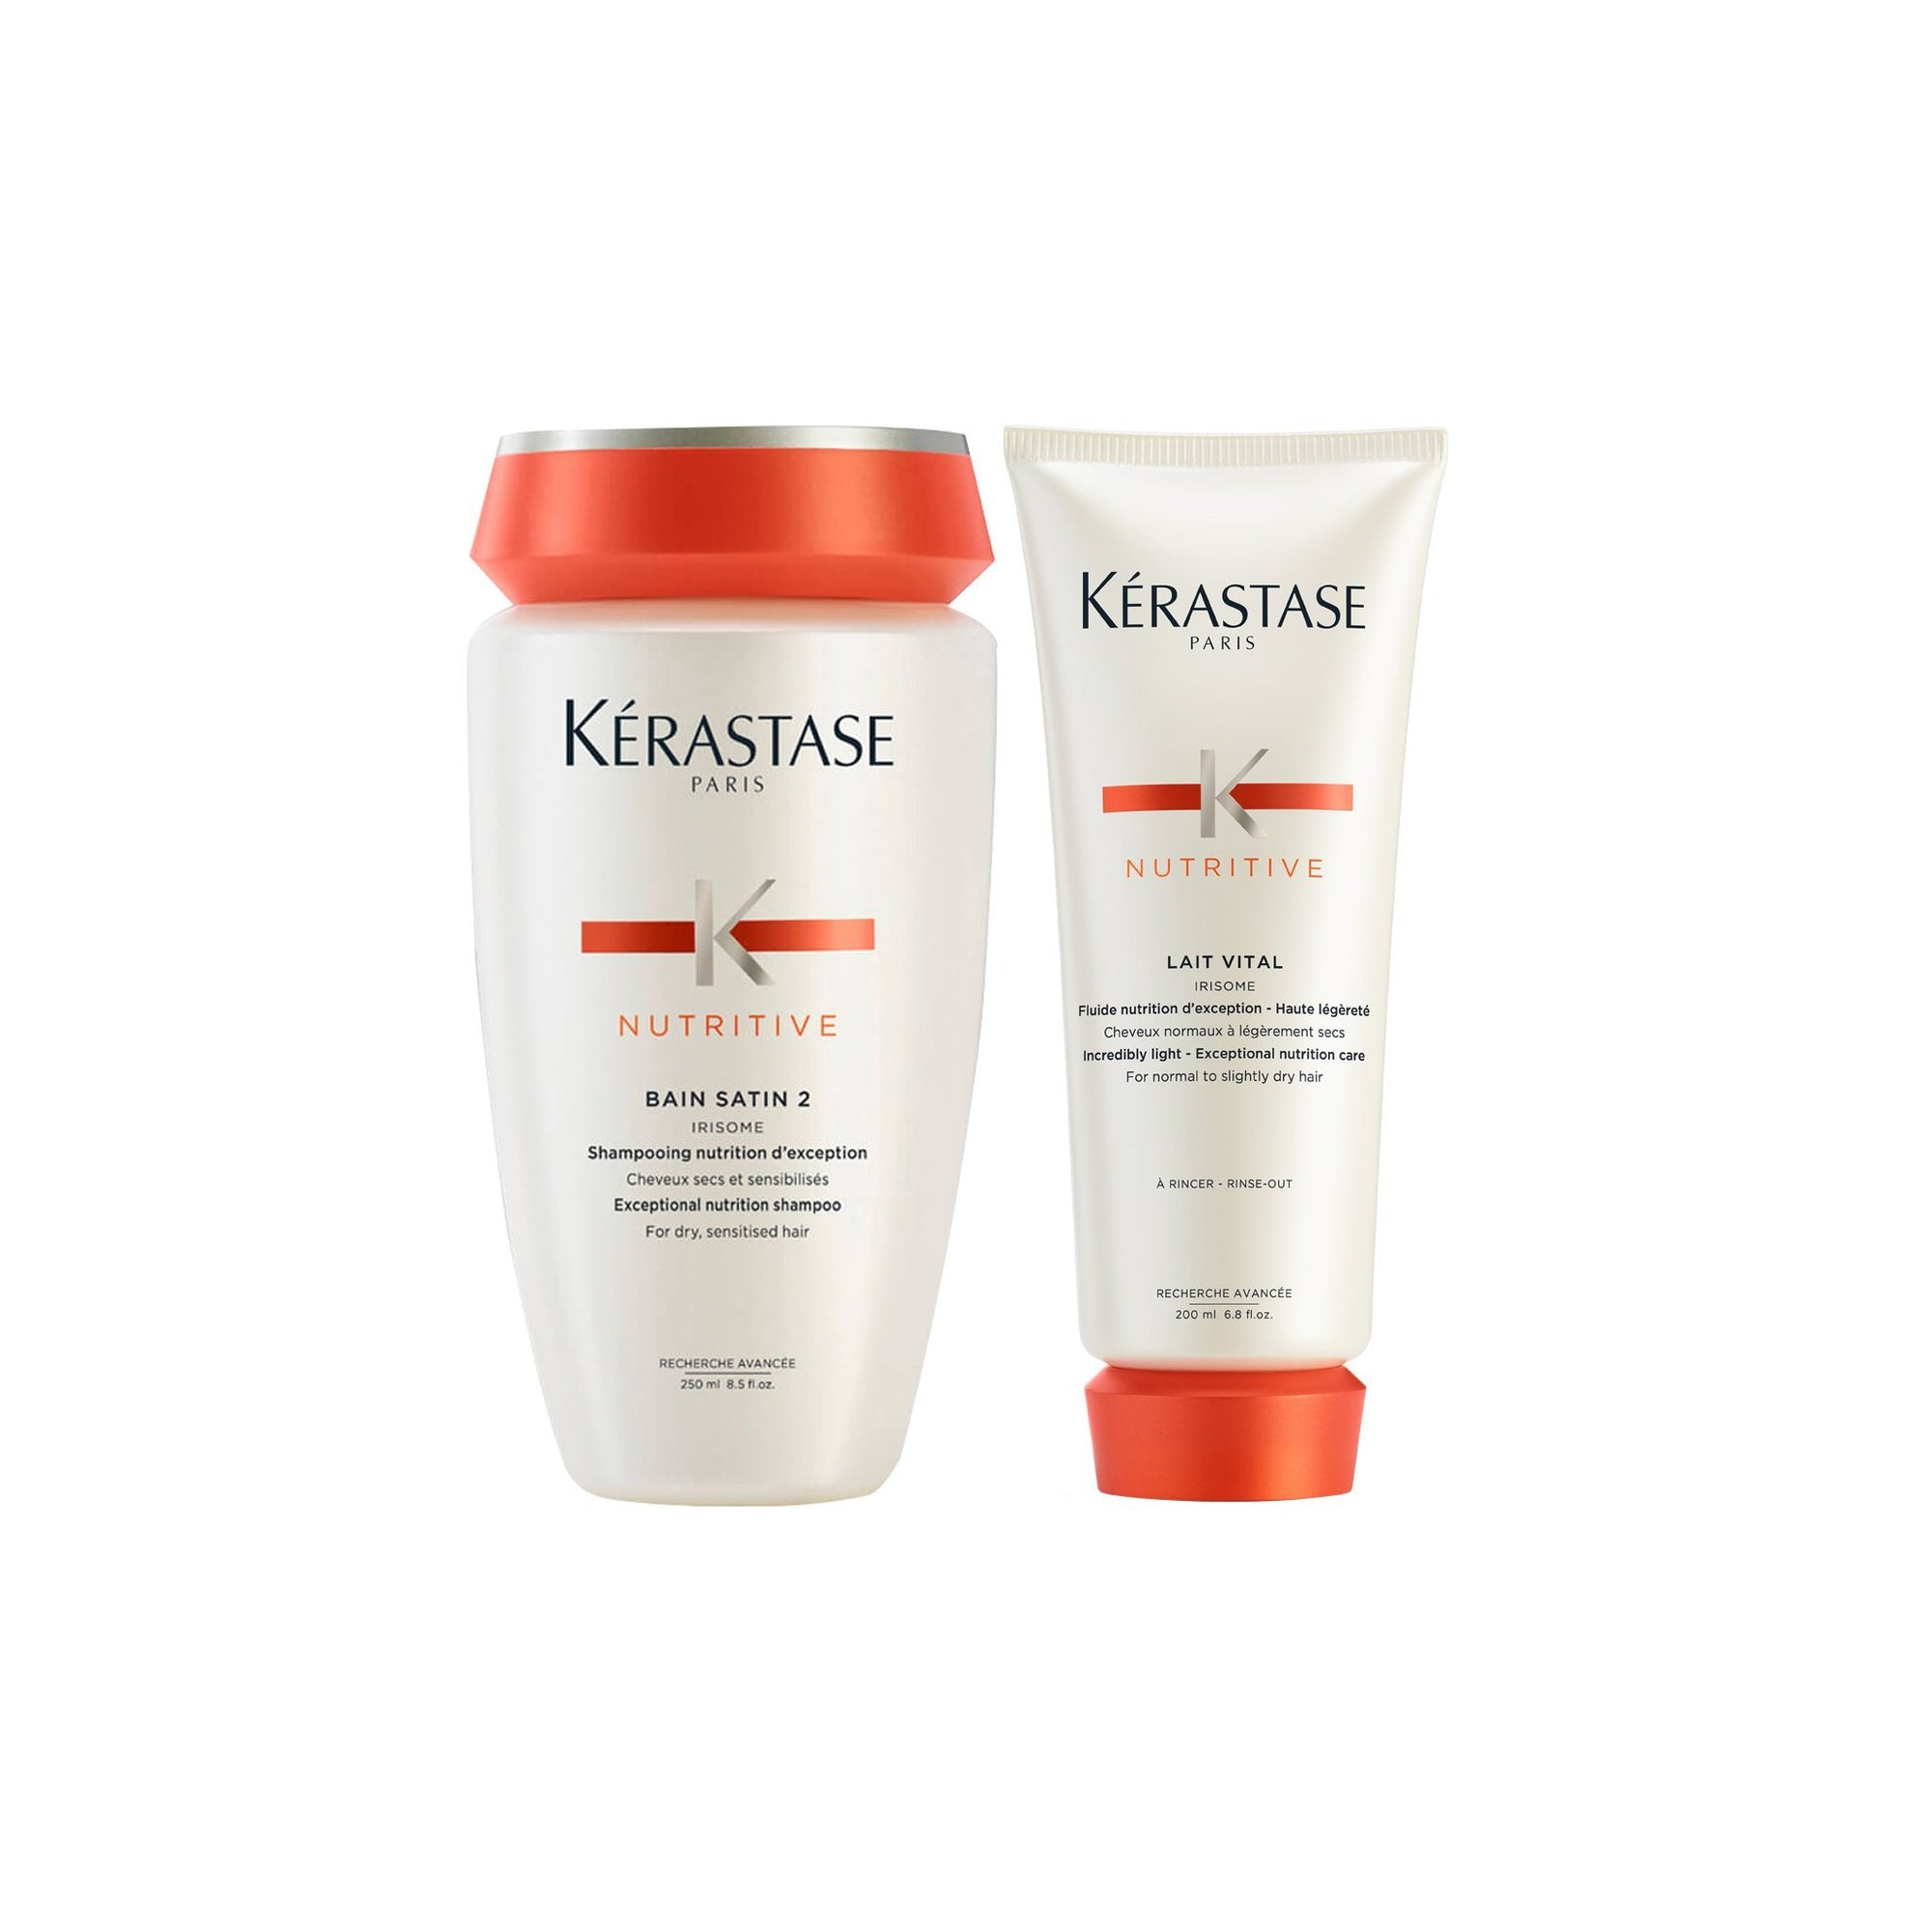 Kerastase Bain Satin 2 Bundle